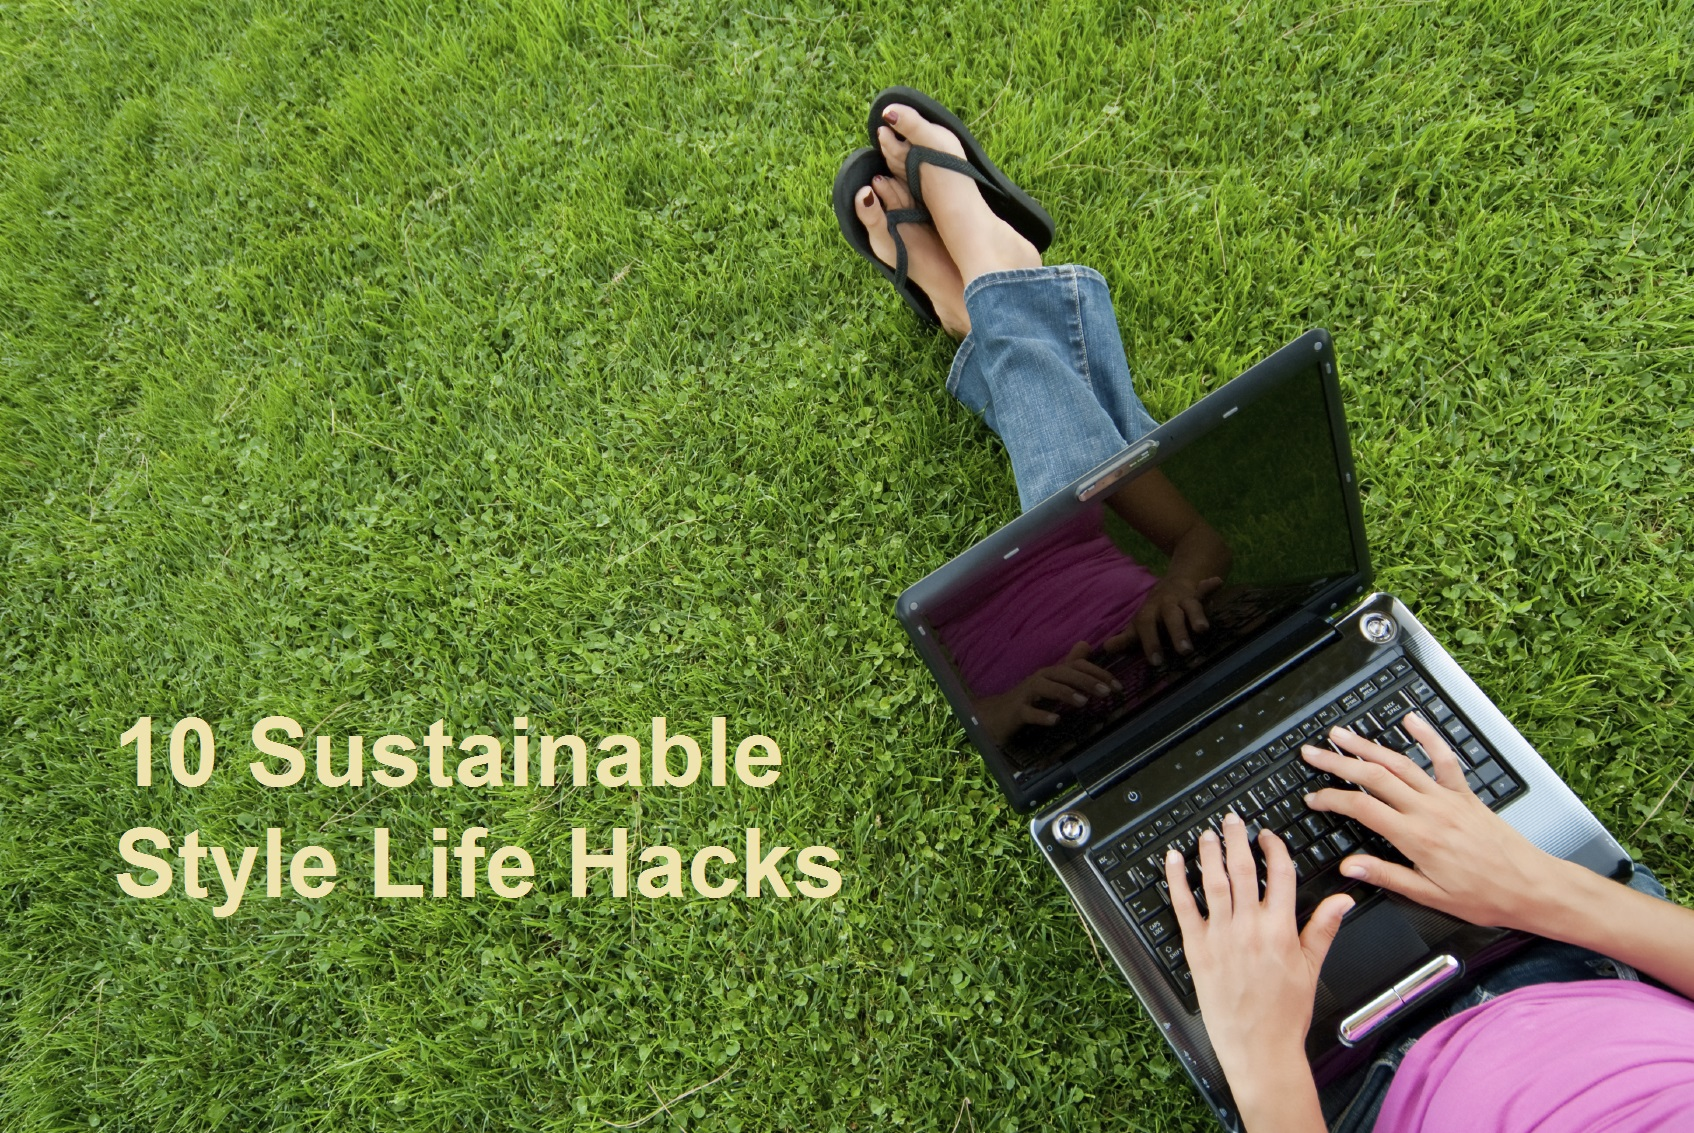 life hacks header 10 Sustainable Style Life Hacks